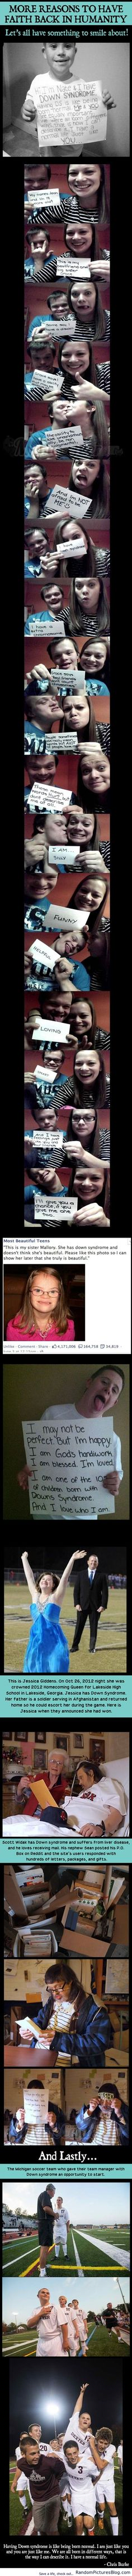 Kids with Down Syndrome  Restoring Faith in Humanity - from www.RandomPicturesBlog.com